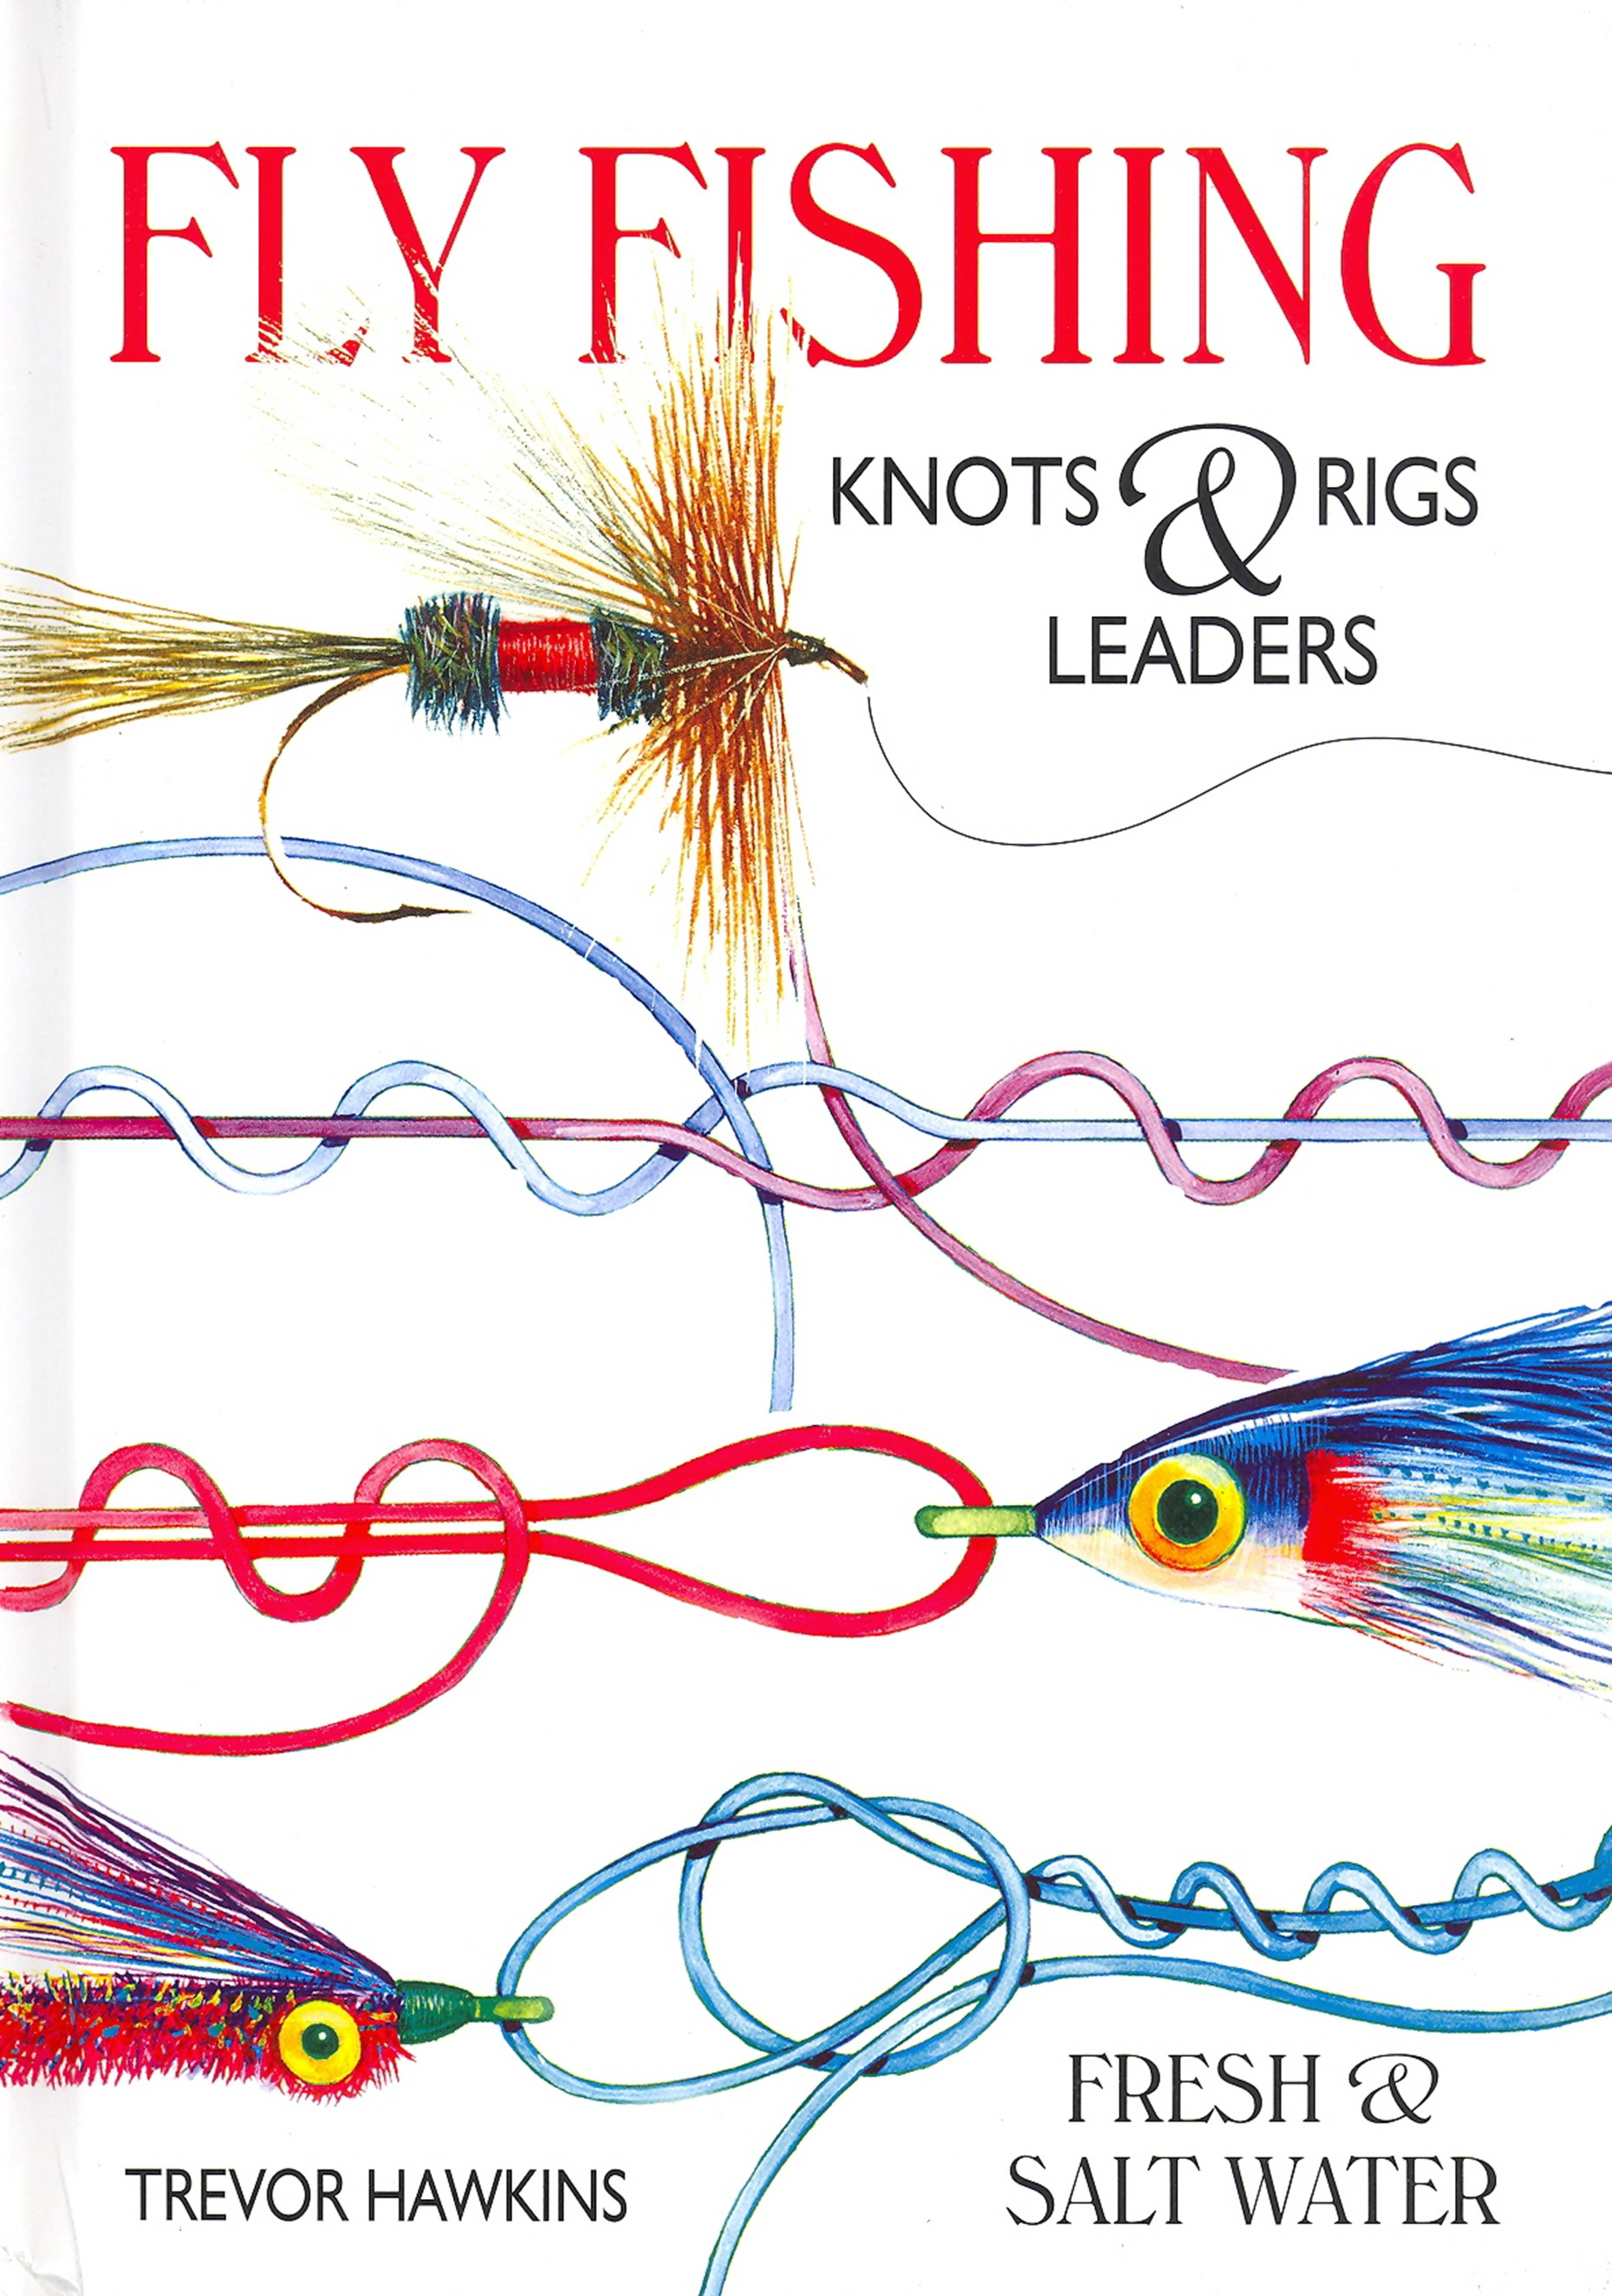 Fly Fishing Knots Rigs & Leaders